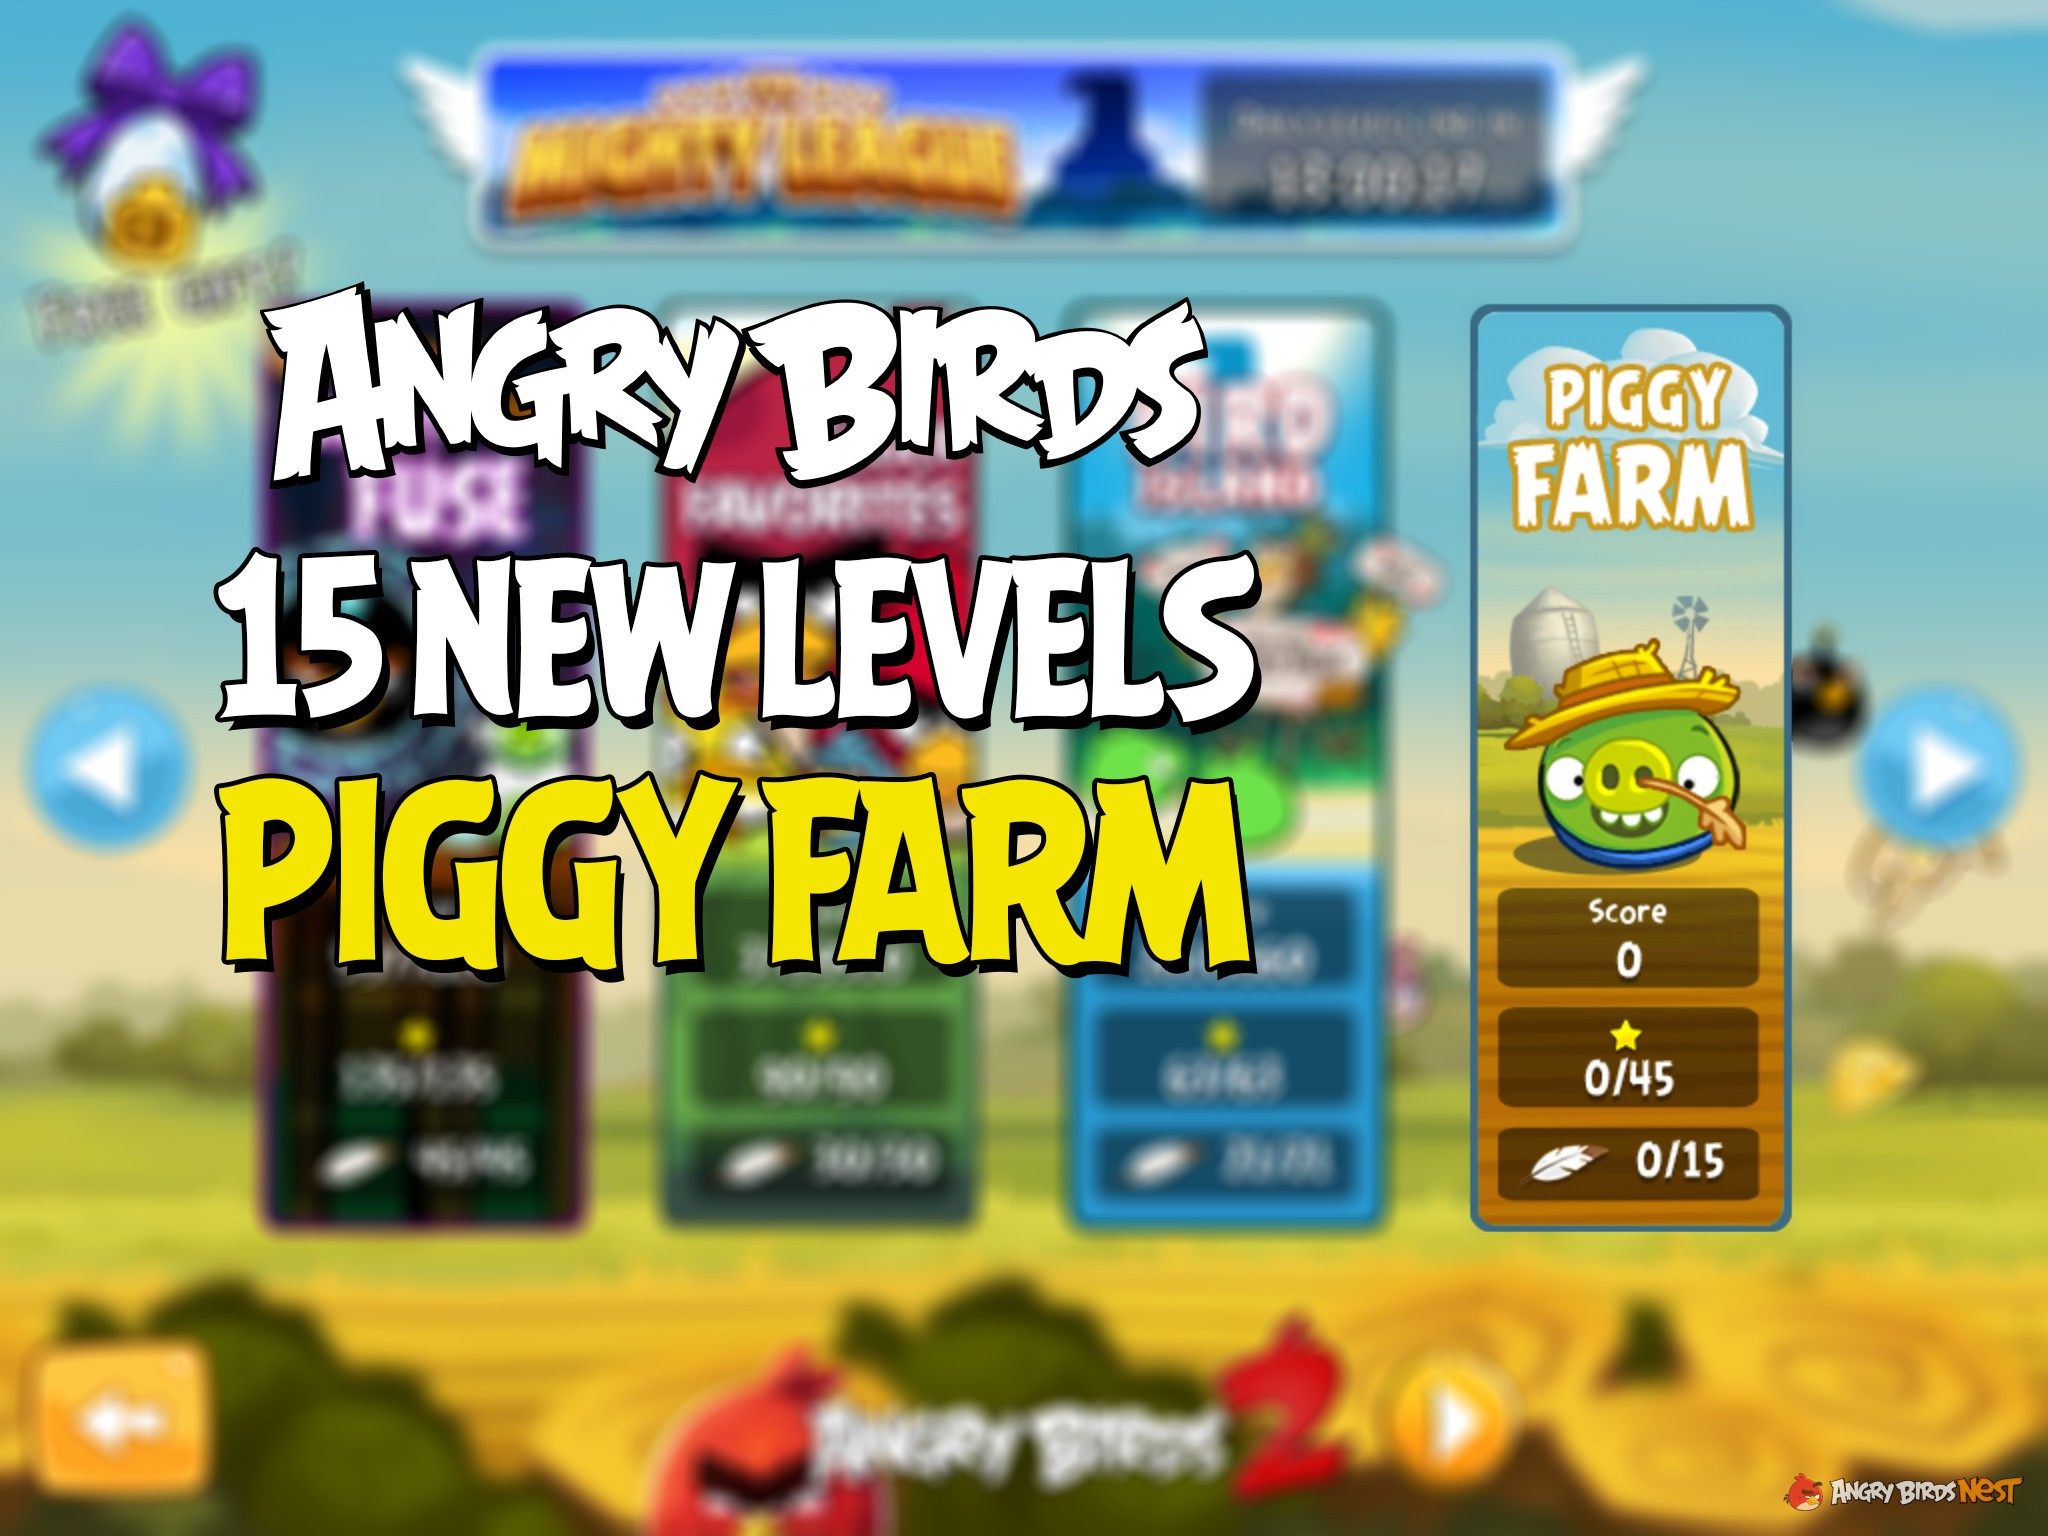 second angry birds piggy farm update adds levels 16 through 30